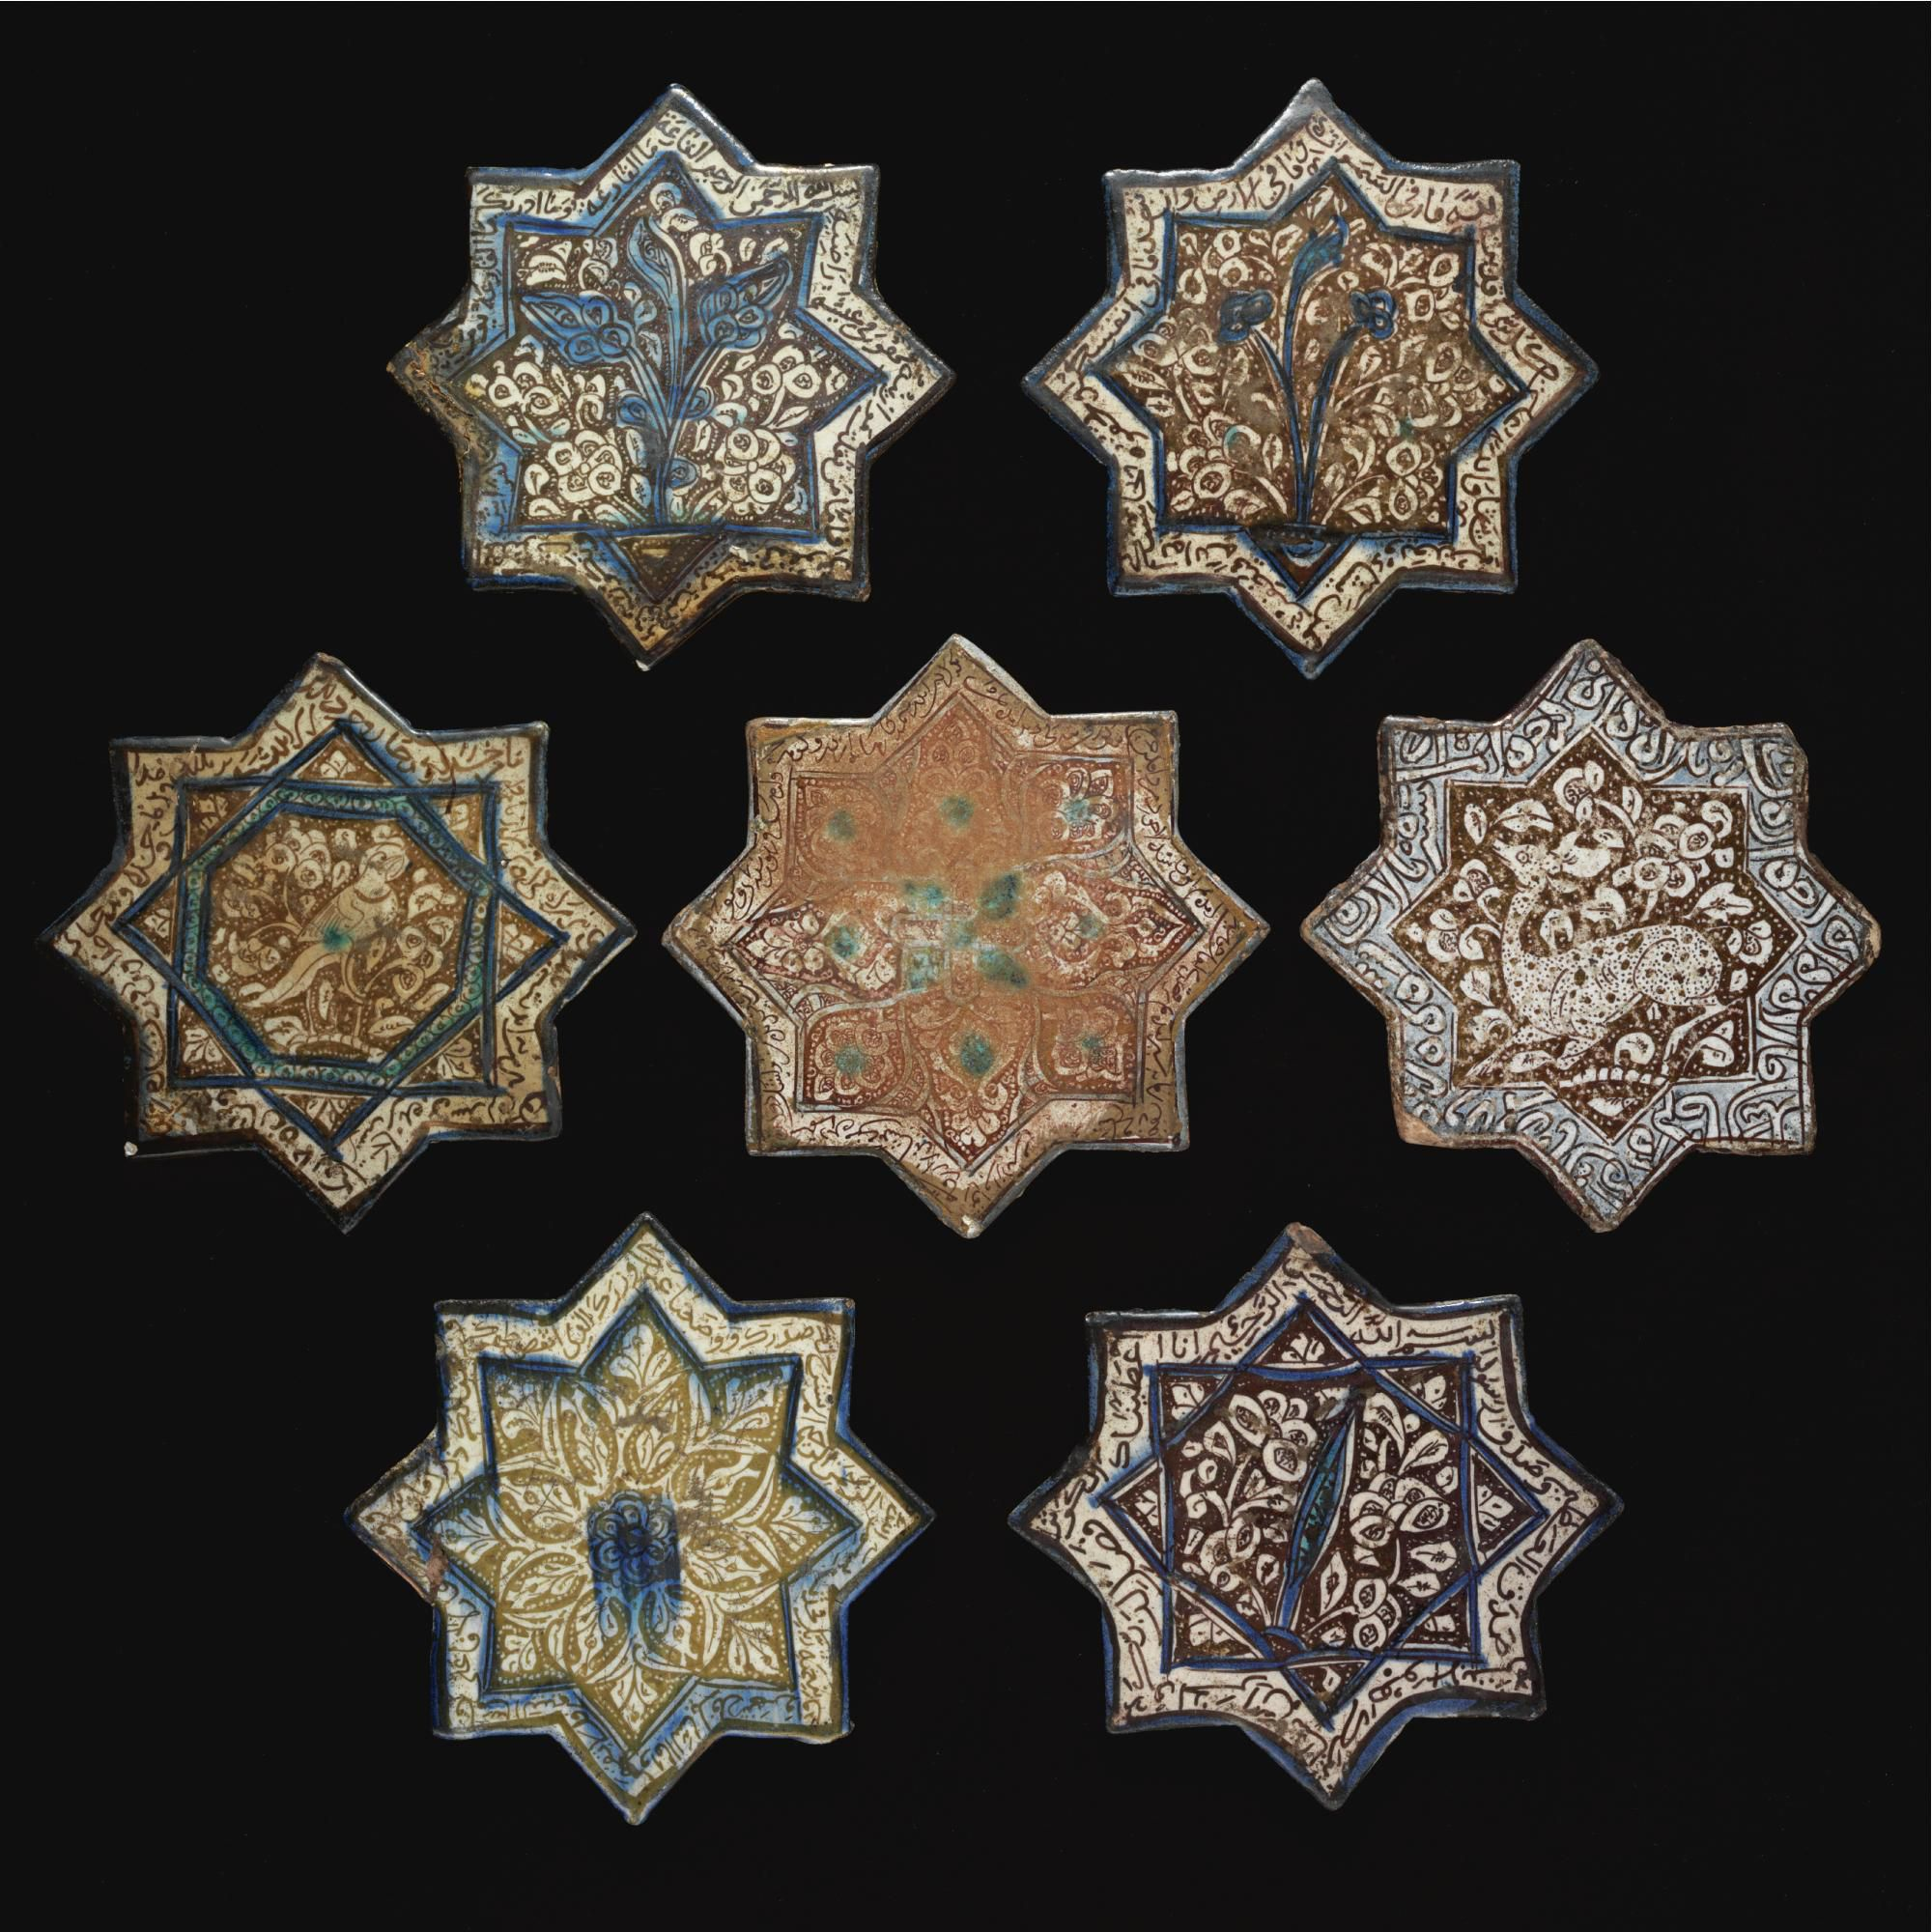 SEVEN PERSIAN LUSTER-PAINTED STAR TILES, KASHAN, SELJUK AND ILKHANID, 13TH CENTURY A.D. reserved in white with cobalt blue or turquoise detail, and painted respectively with a couchant deer, a bird, a rosette of radiating petals with blue splash in the center, a plant with tri-lobed flowers, a plant with fleur-de-lys, a tree or leaf, and an intricate radiating arabesque, all of the tiles with inscriptions in the borders.